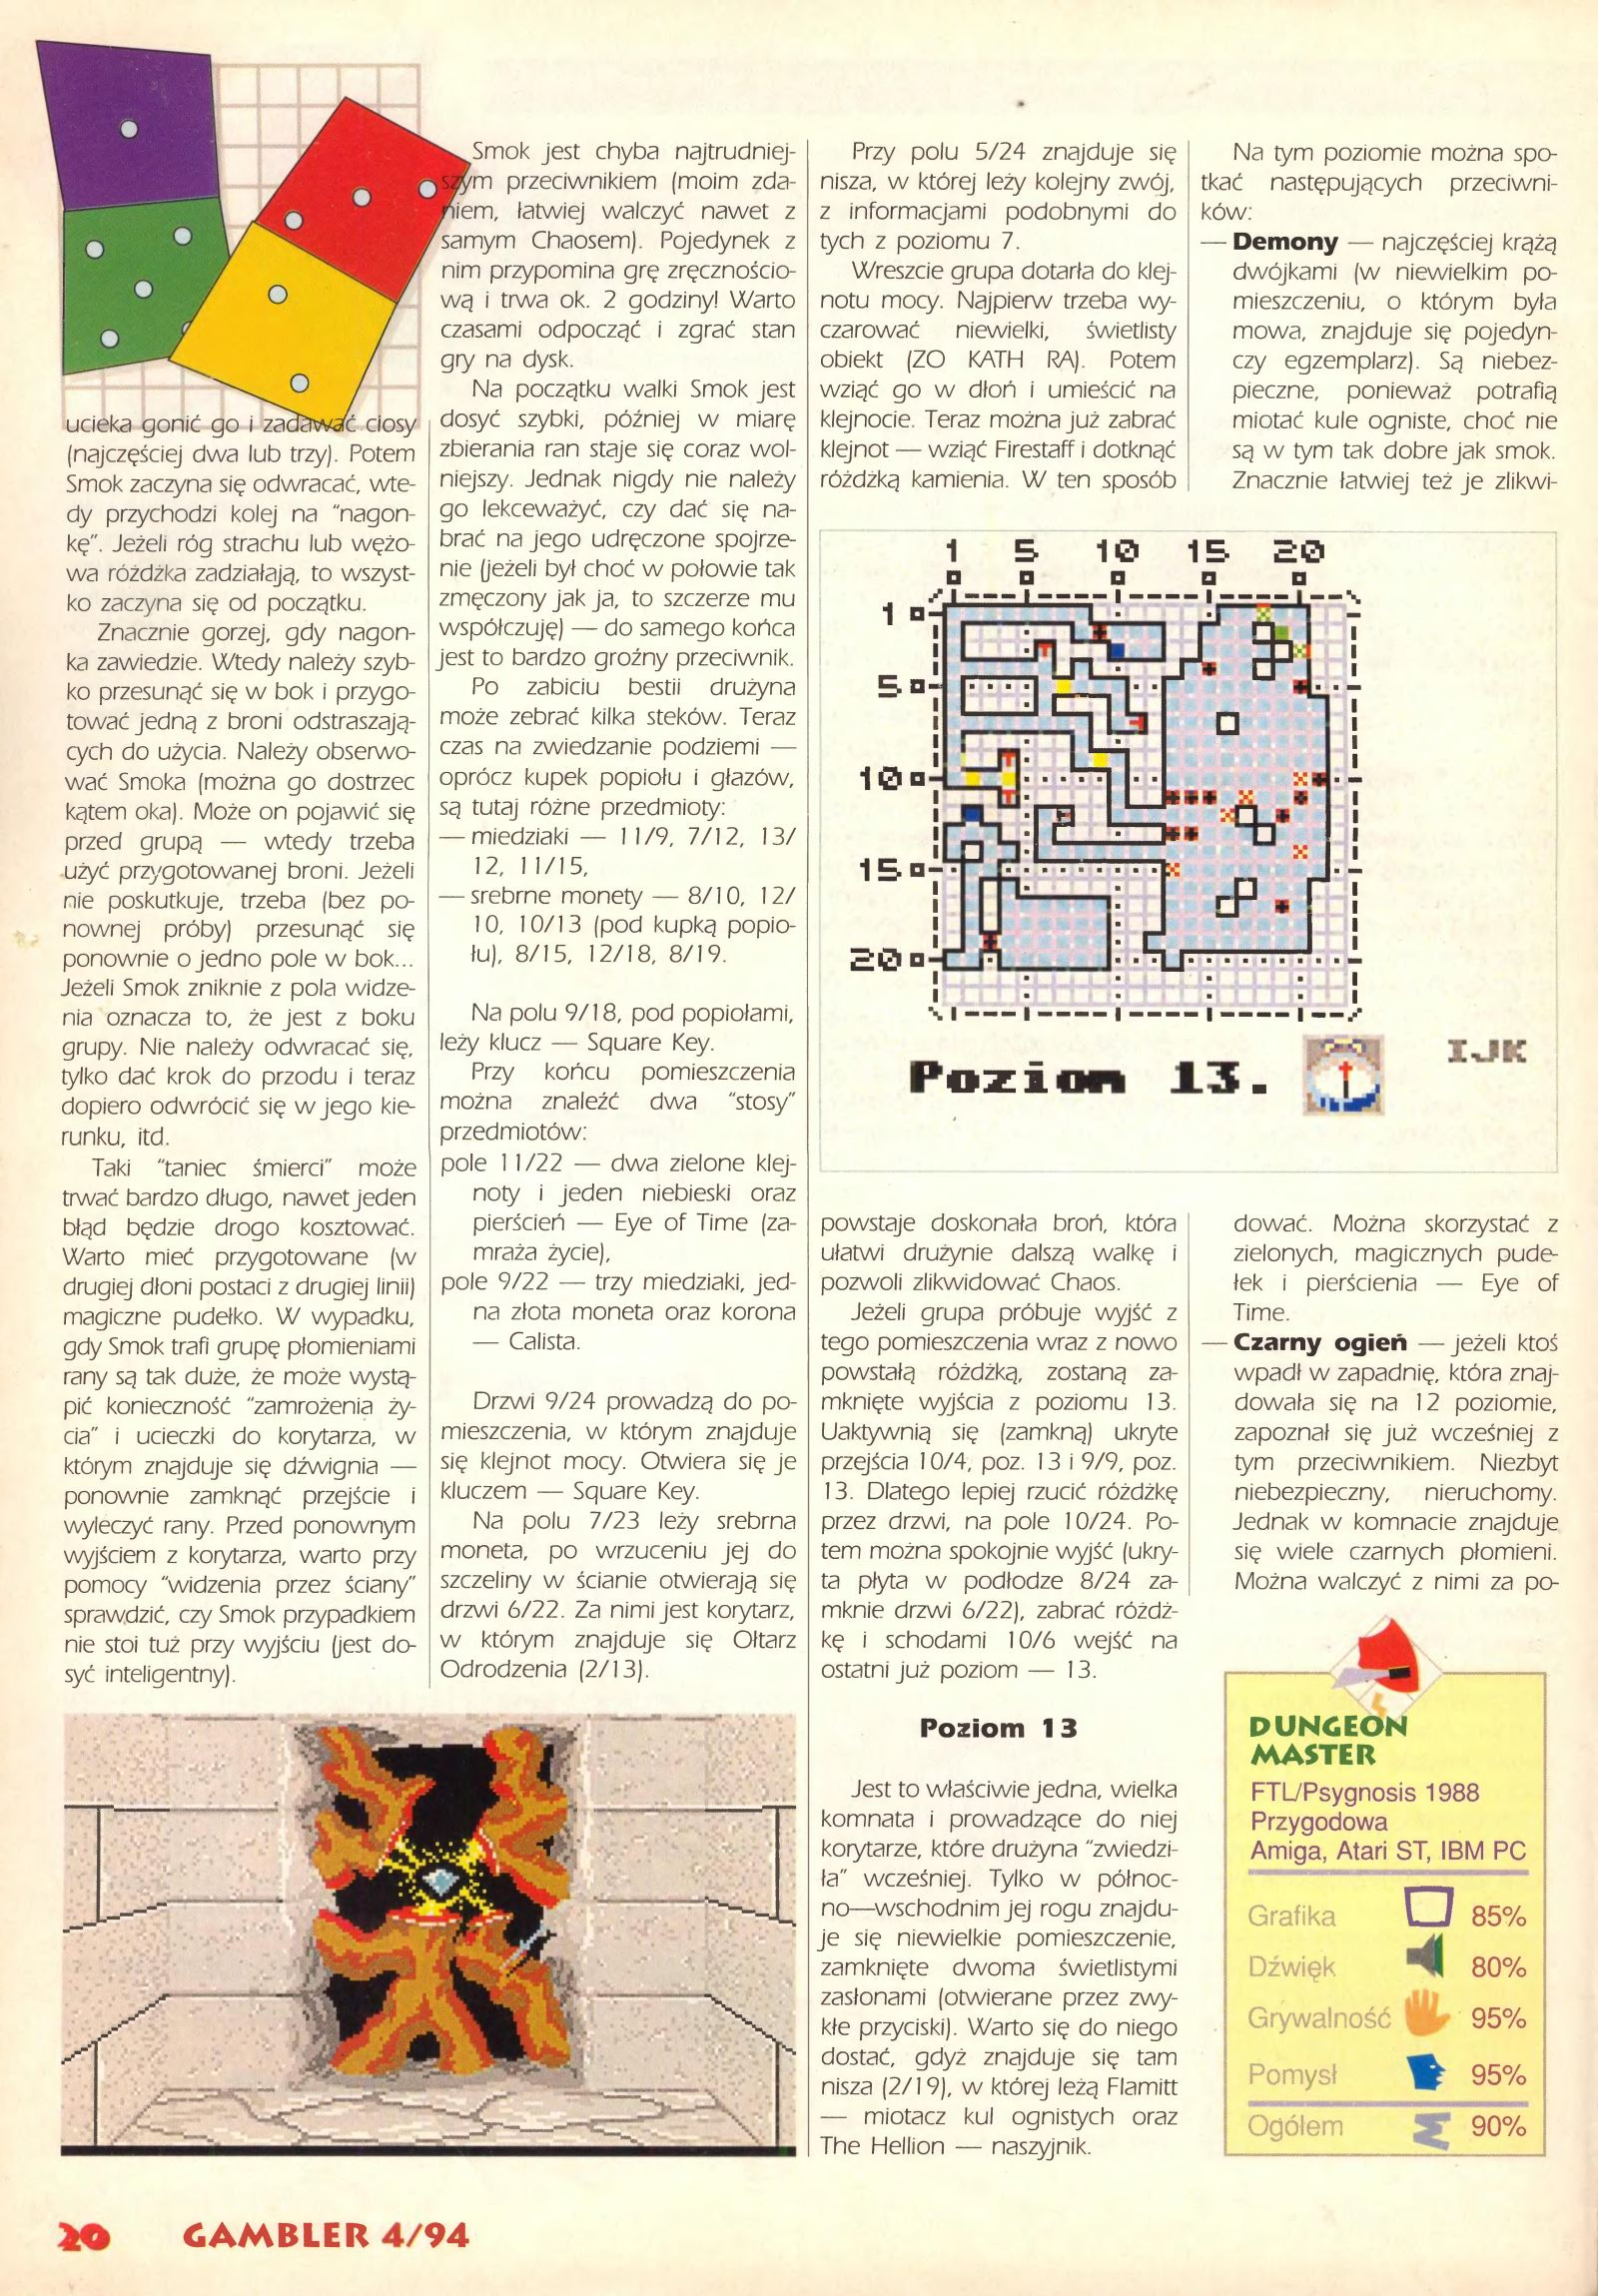 Dungeon Master Guide published in Polish magazine 'Gambler', April 1994, Page 20